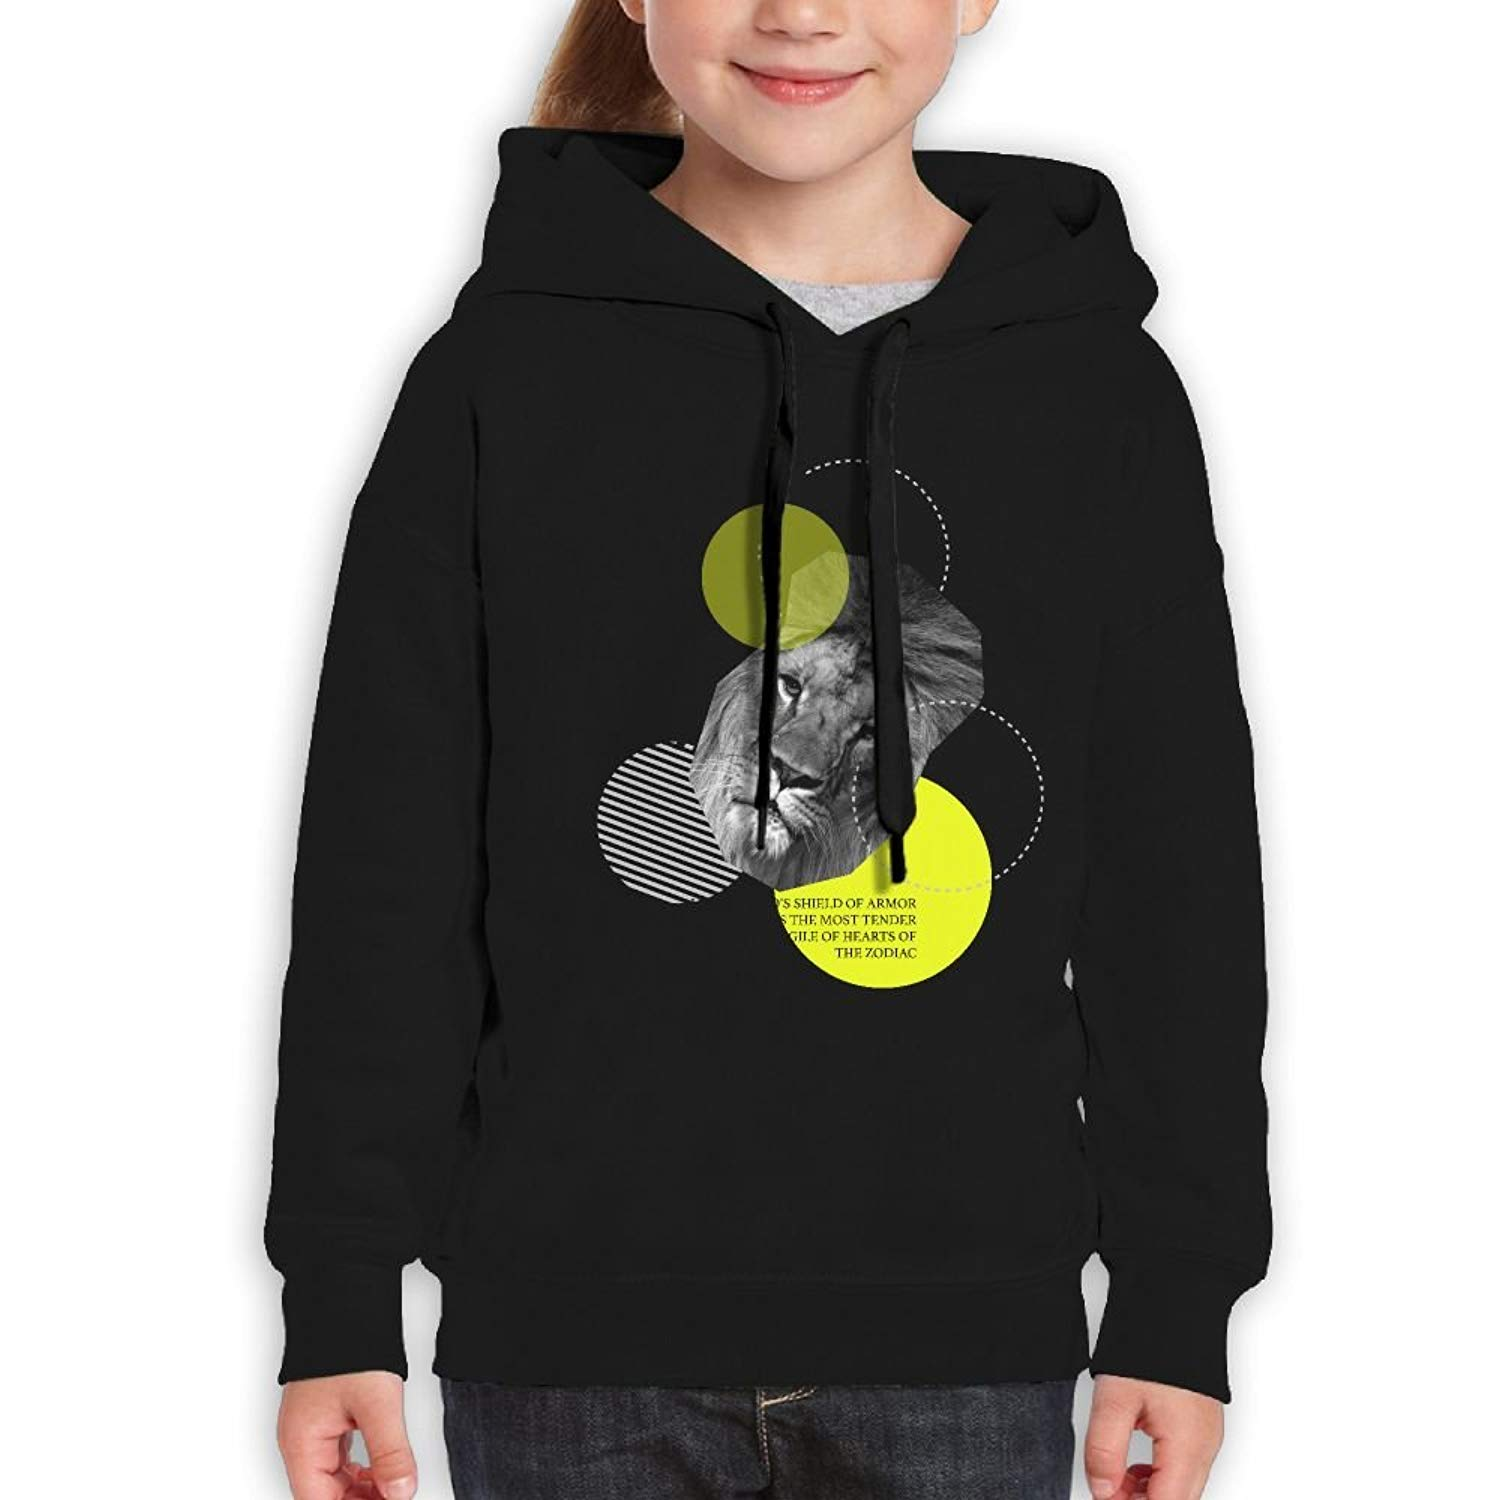 Favorystore Cancer Girls Are Sunshine Mixed With a Little Hurricane Hoodie